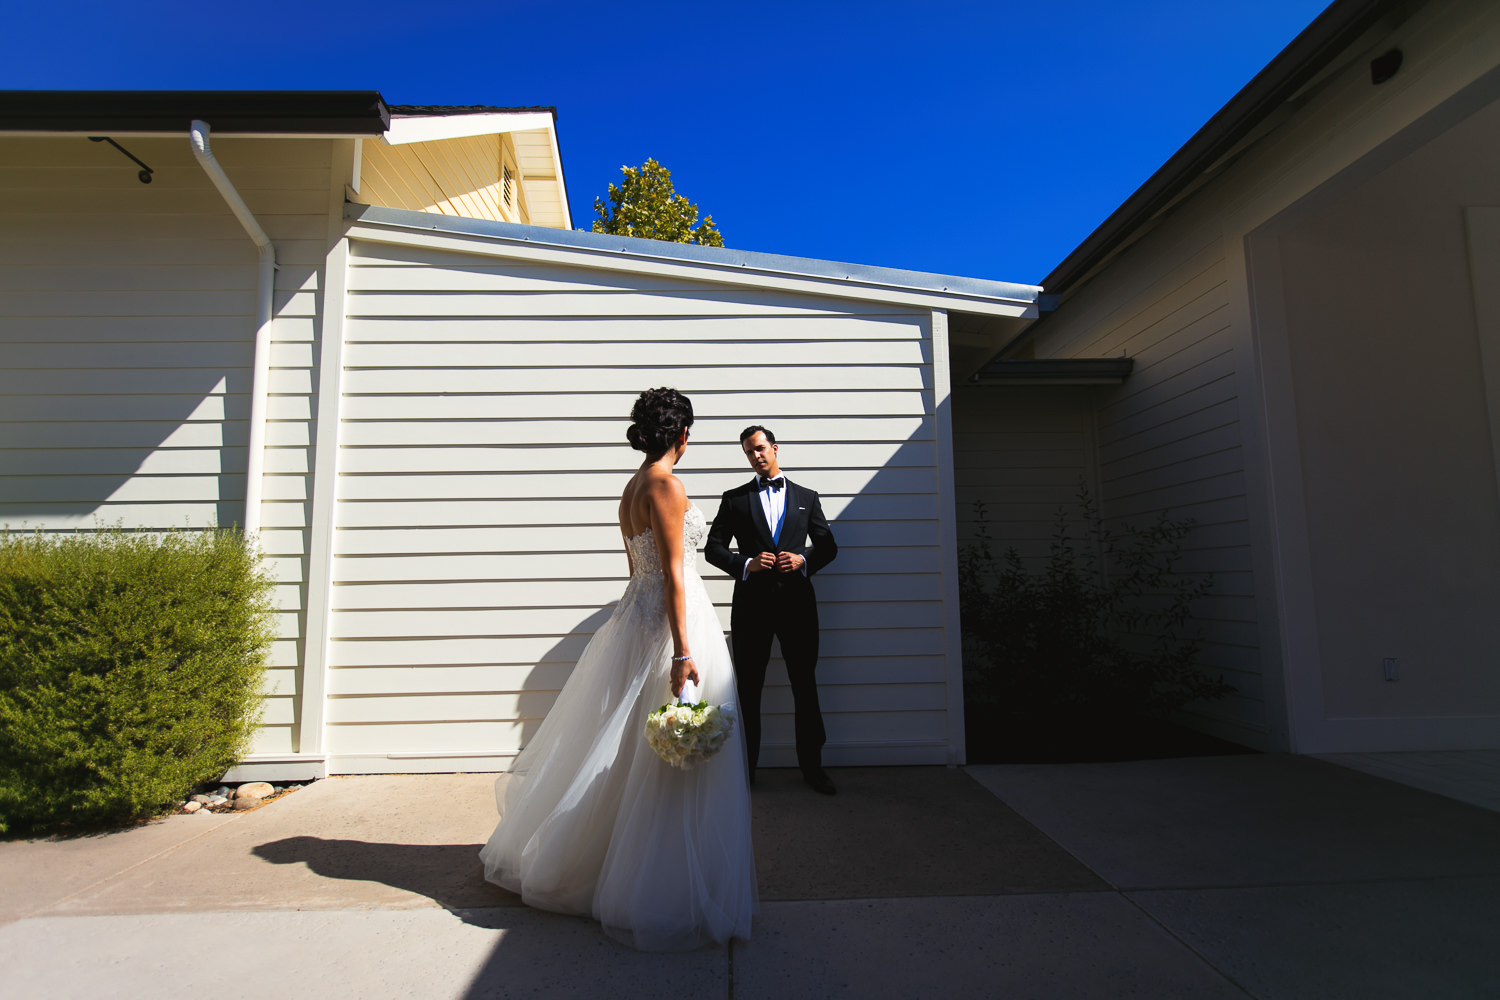 The Spa at Solage in Napa Valley is a great place for wedding portraits